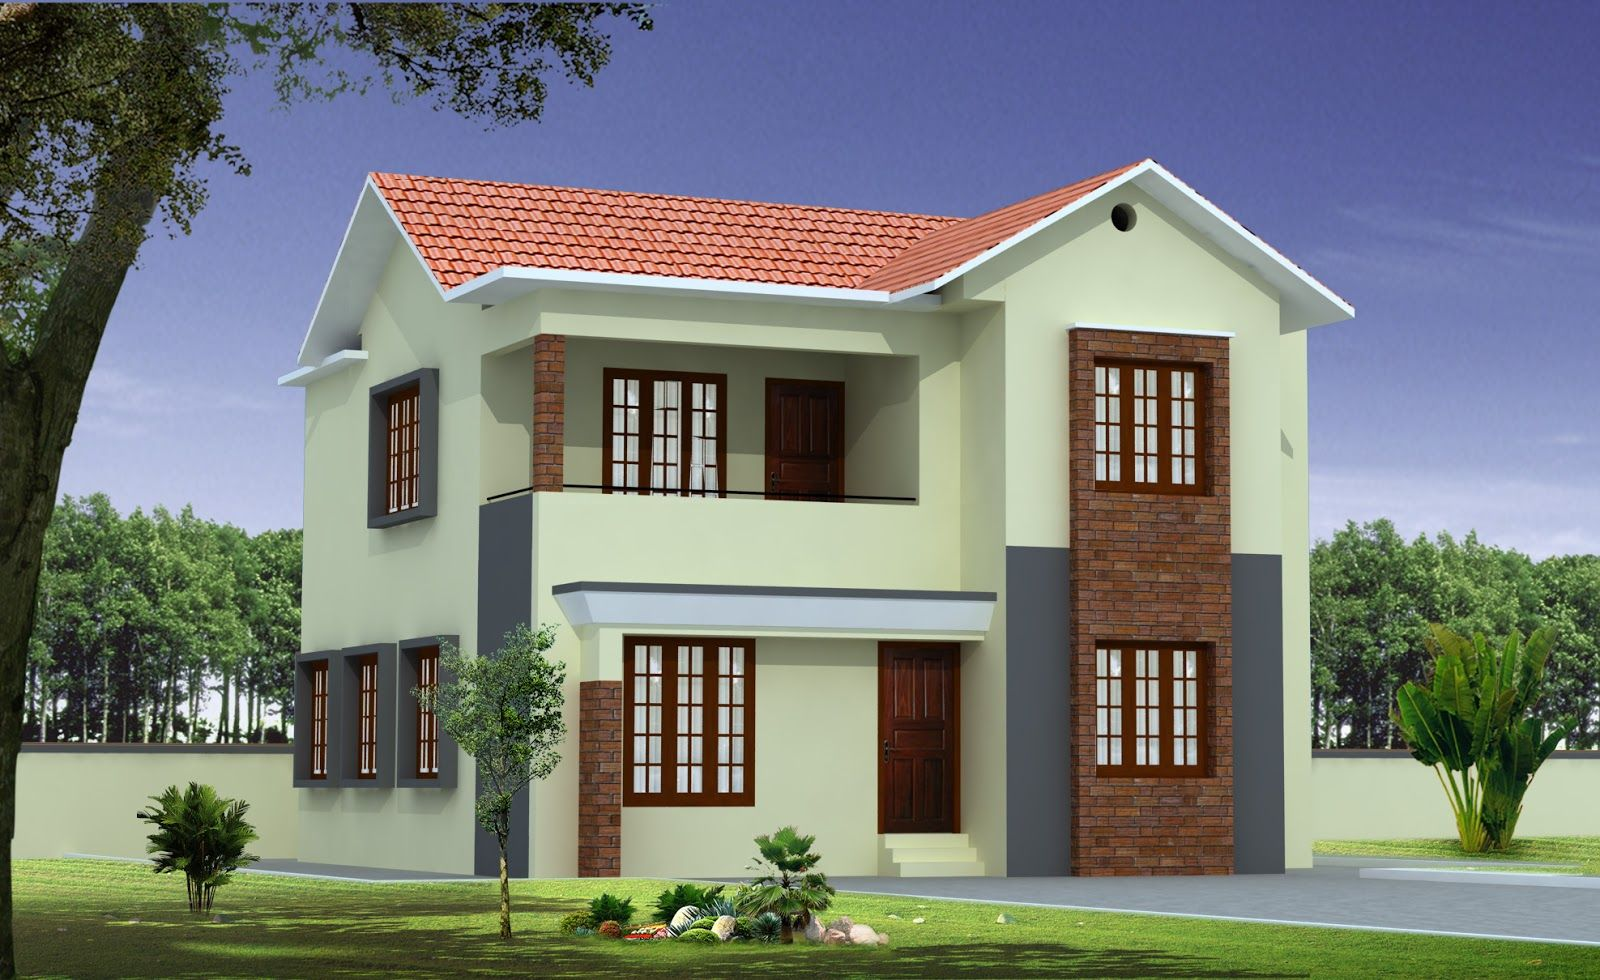 Home Design 28217 29 Jpg 1600 980 Home Building Design Building Design Latest House Designs